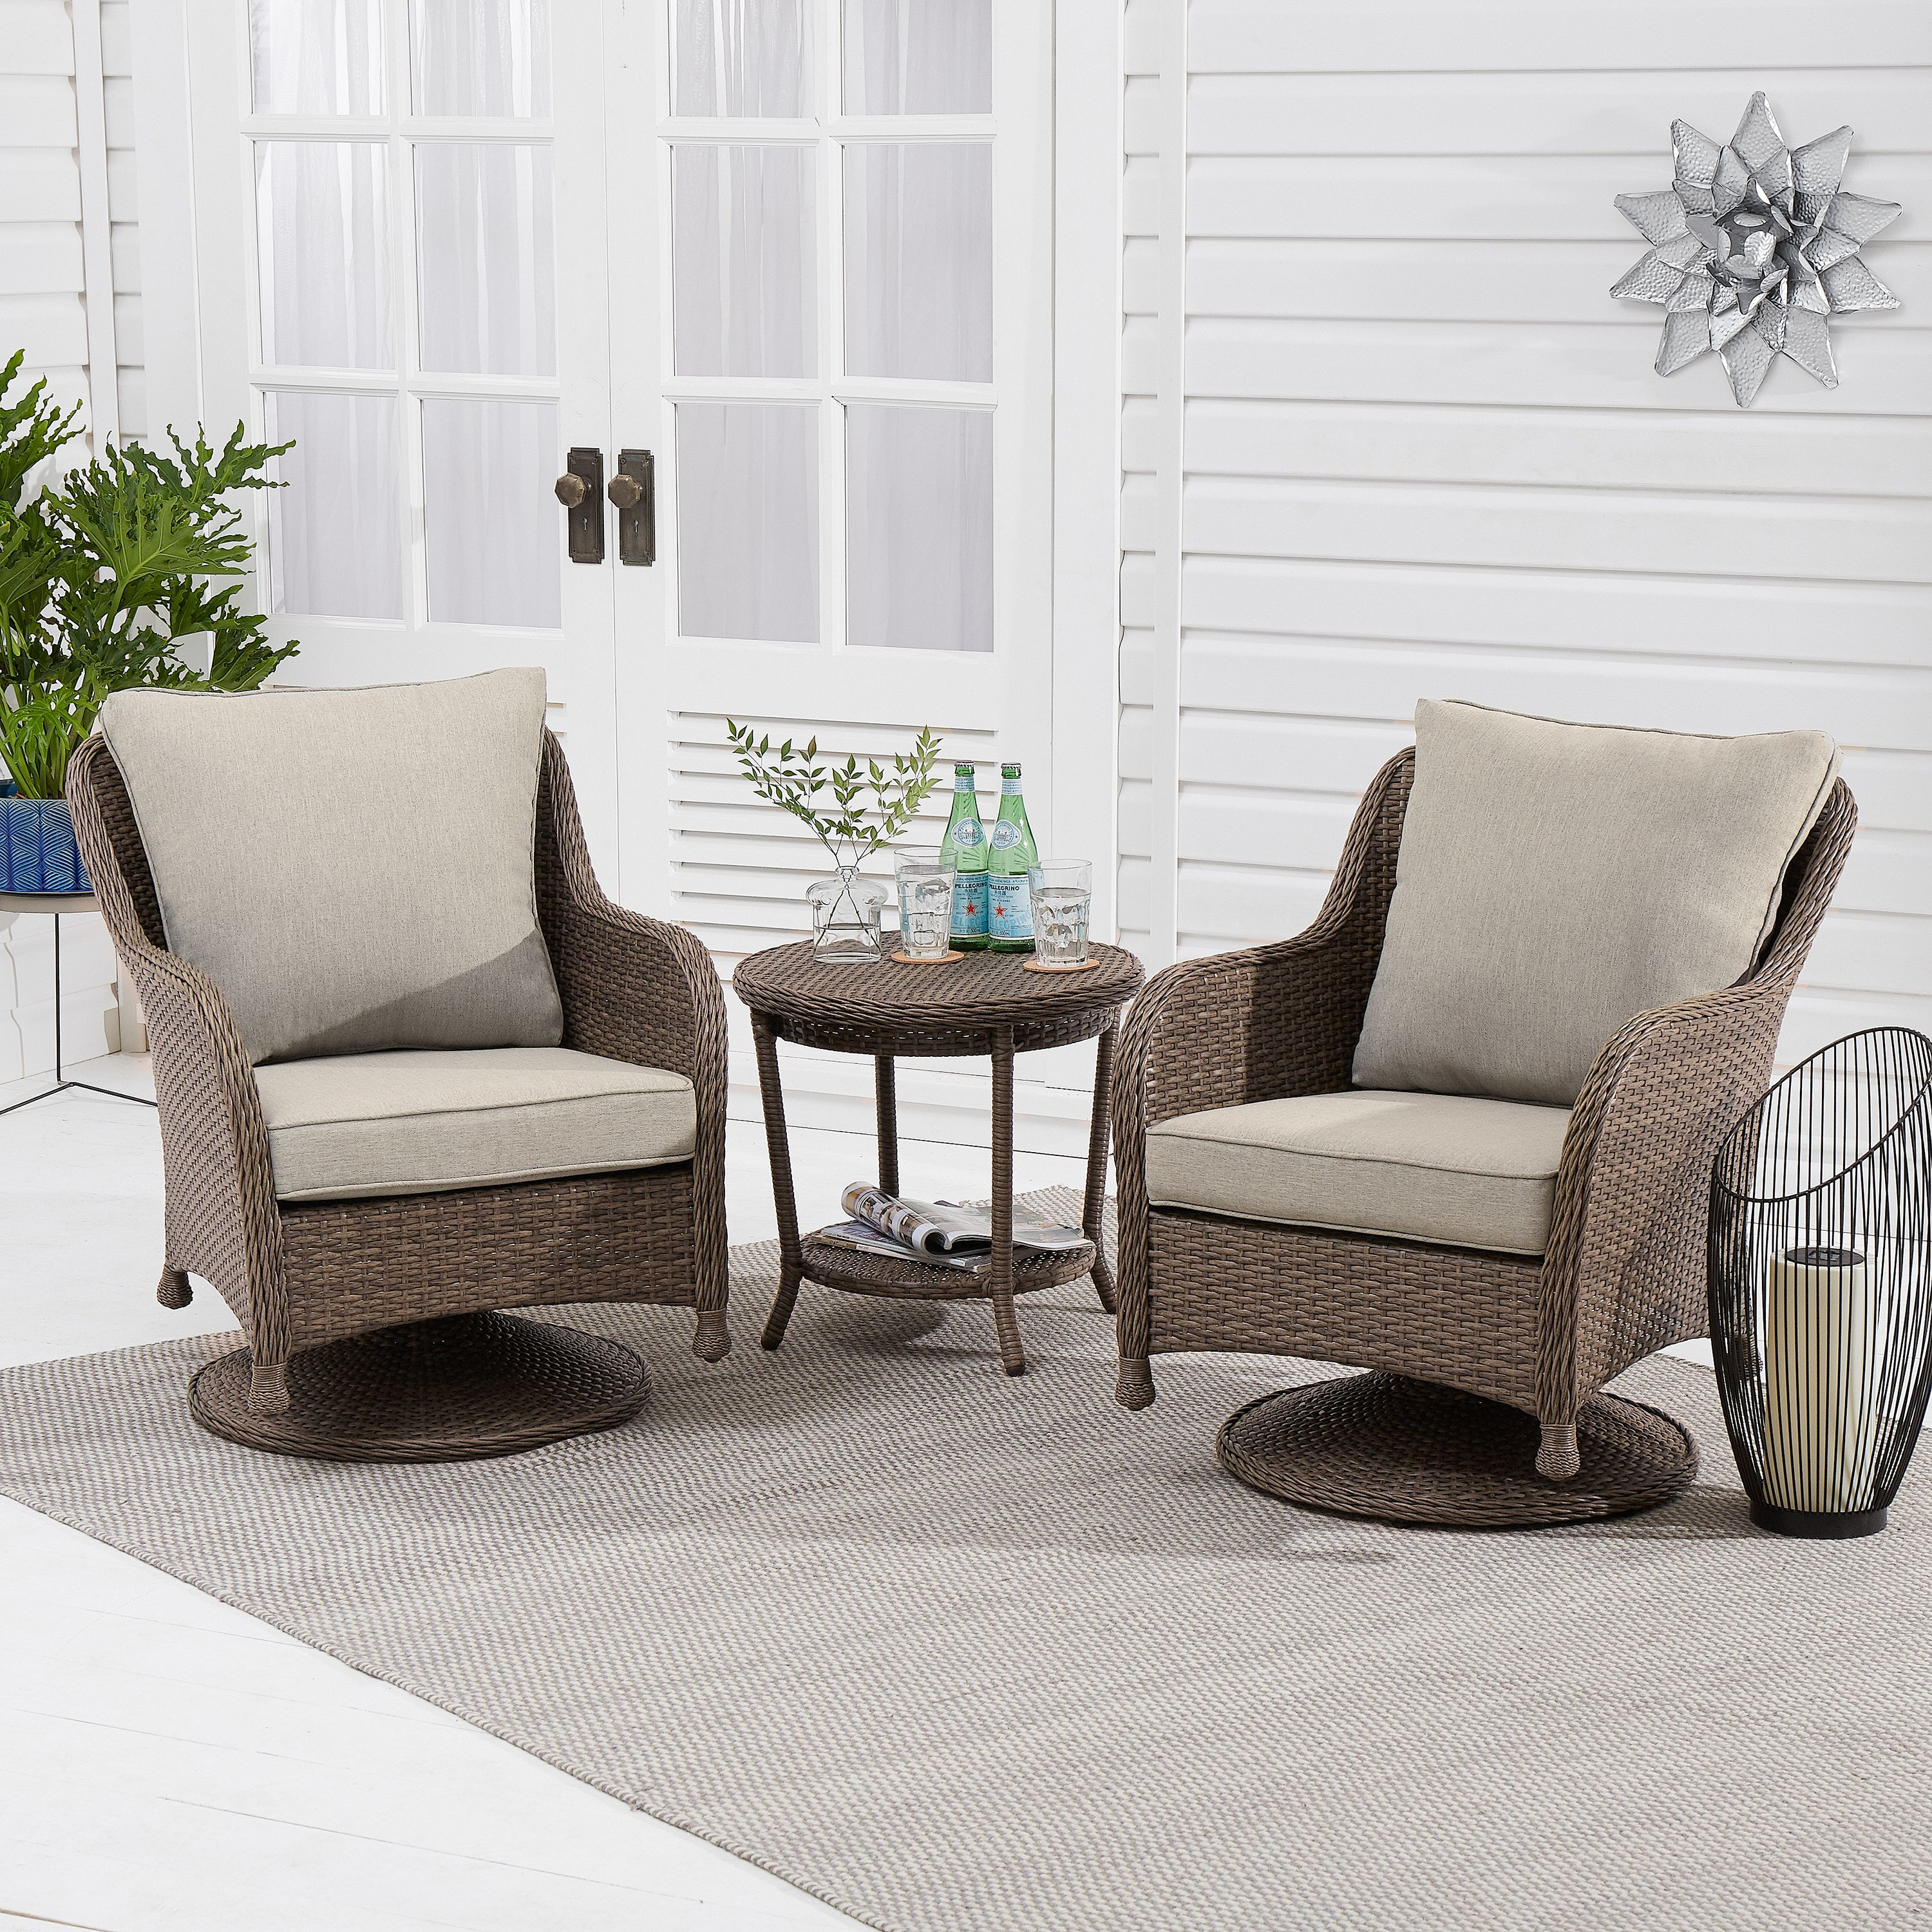 Better Homes & Gardens Hayward 3-Piece Wicker Motion Patio Chat Set